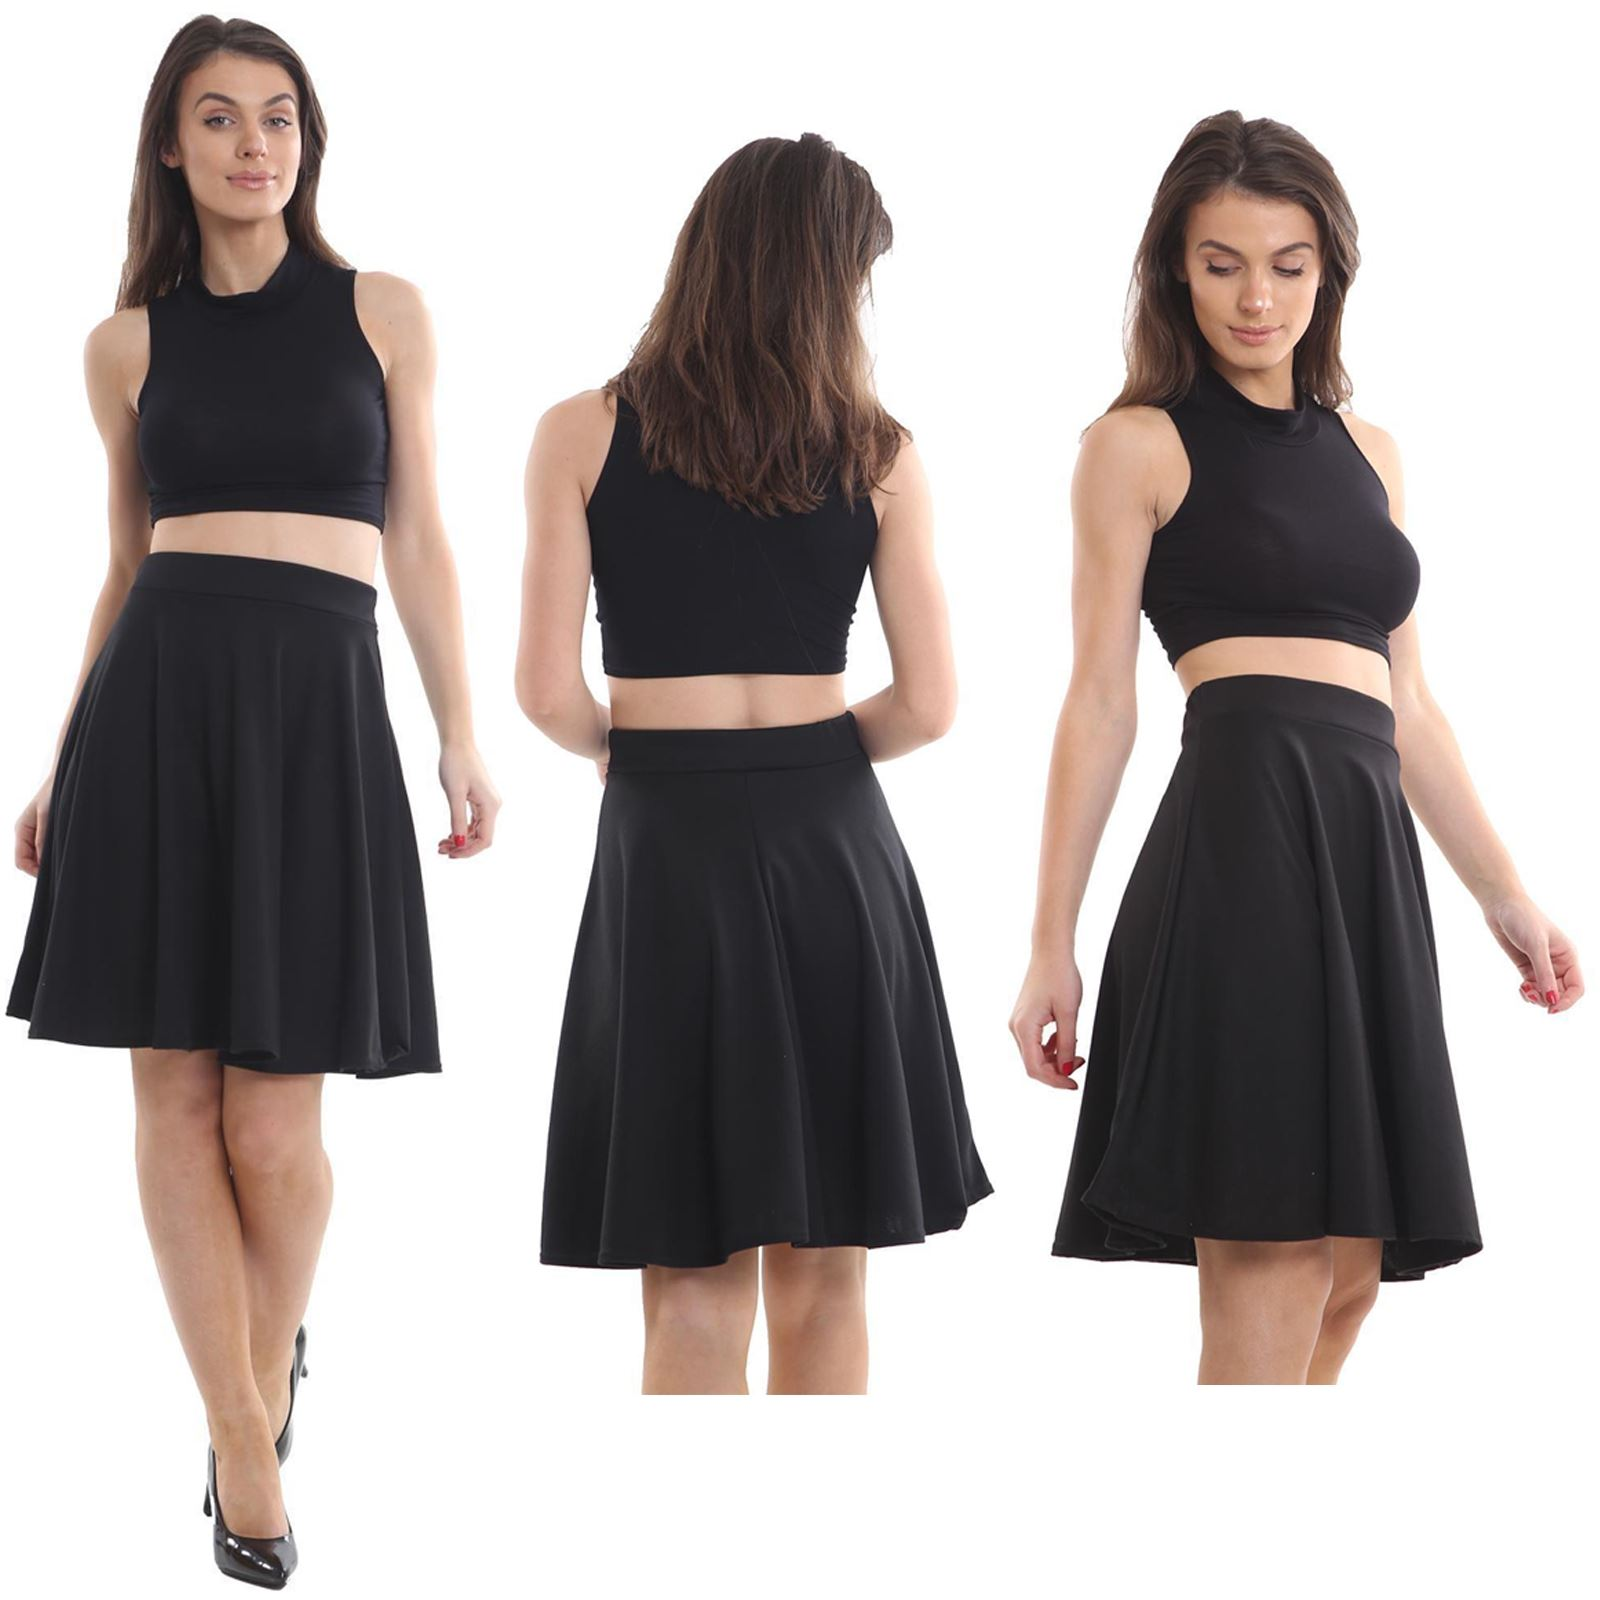 NEW WOMENS LADIES CASUAL BASIC JERSEY ELASTICATED WAIST FLARED LOOK SKATER SKIRT